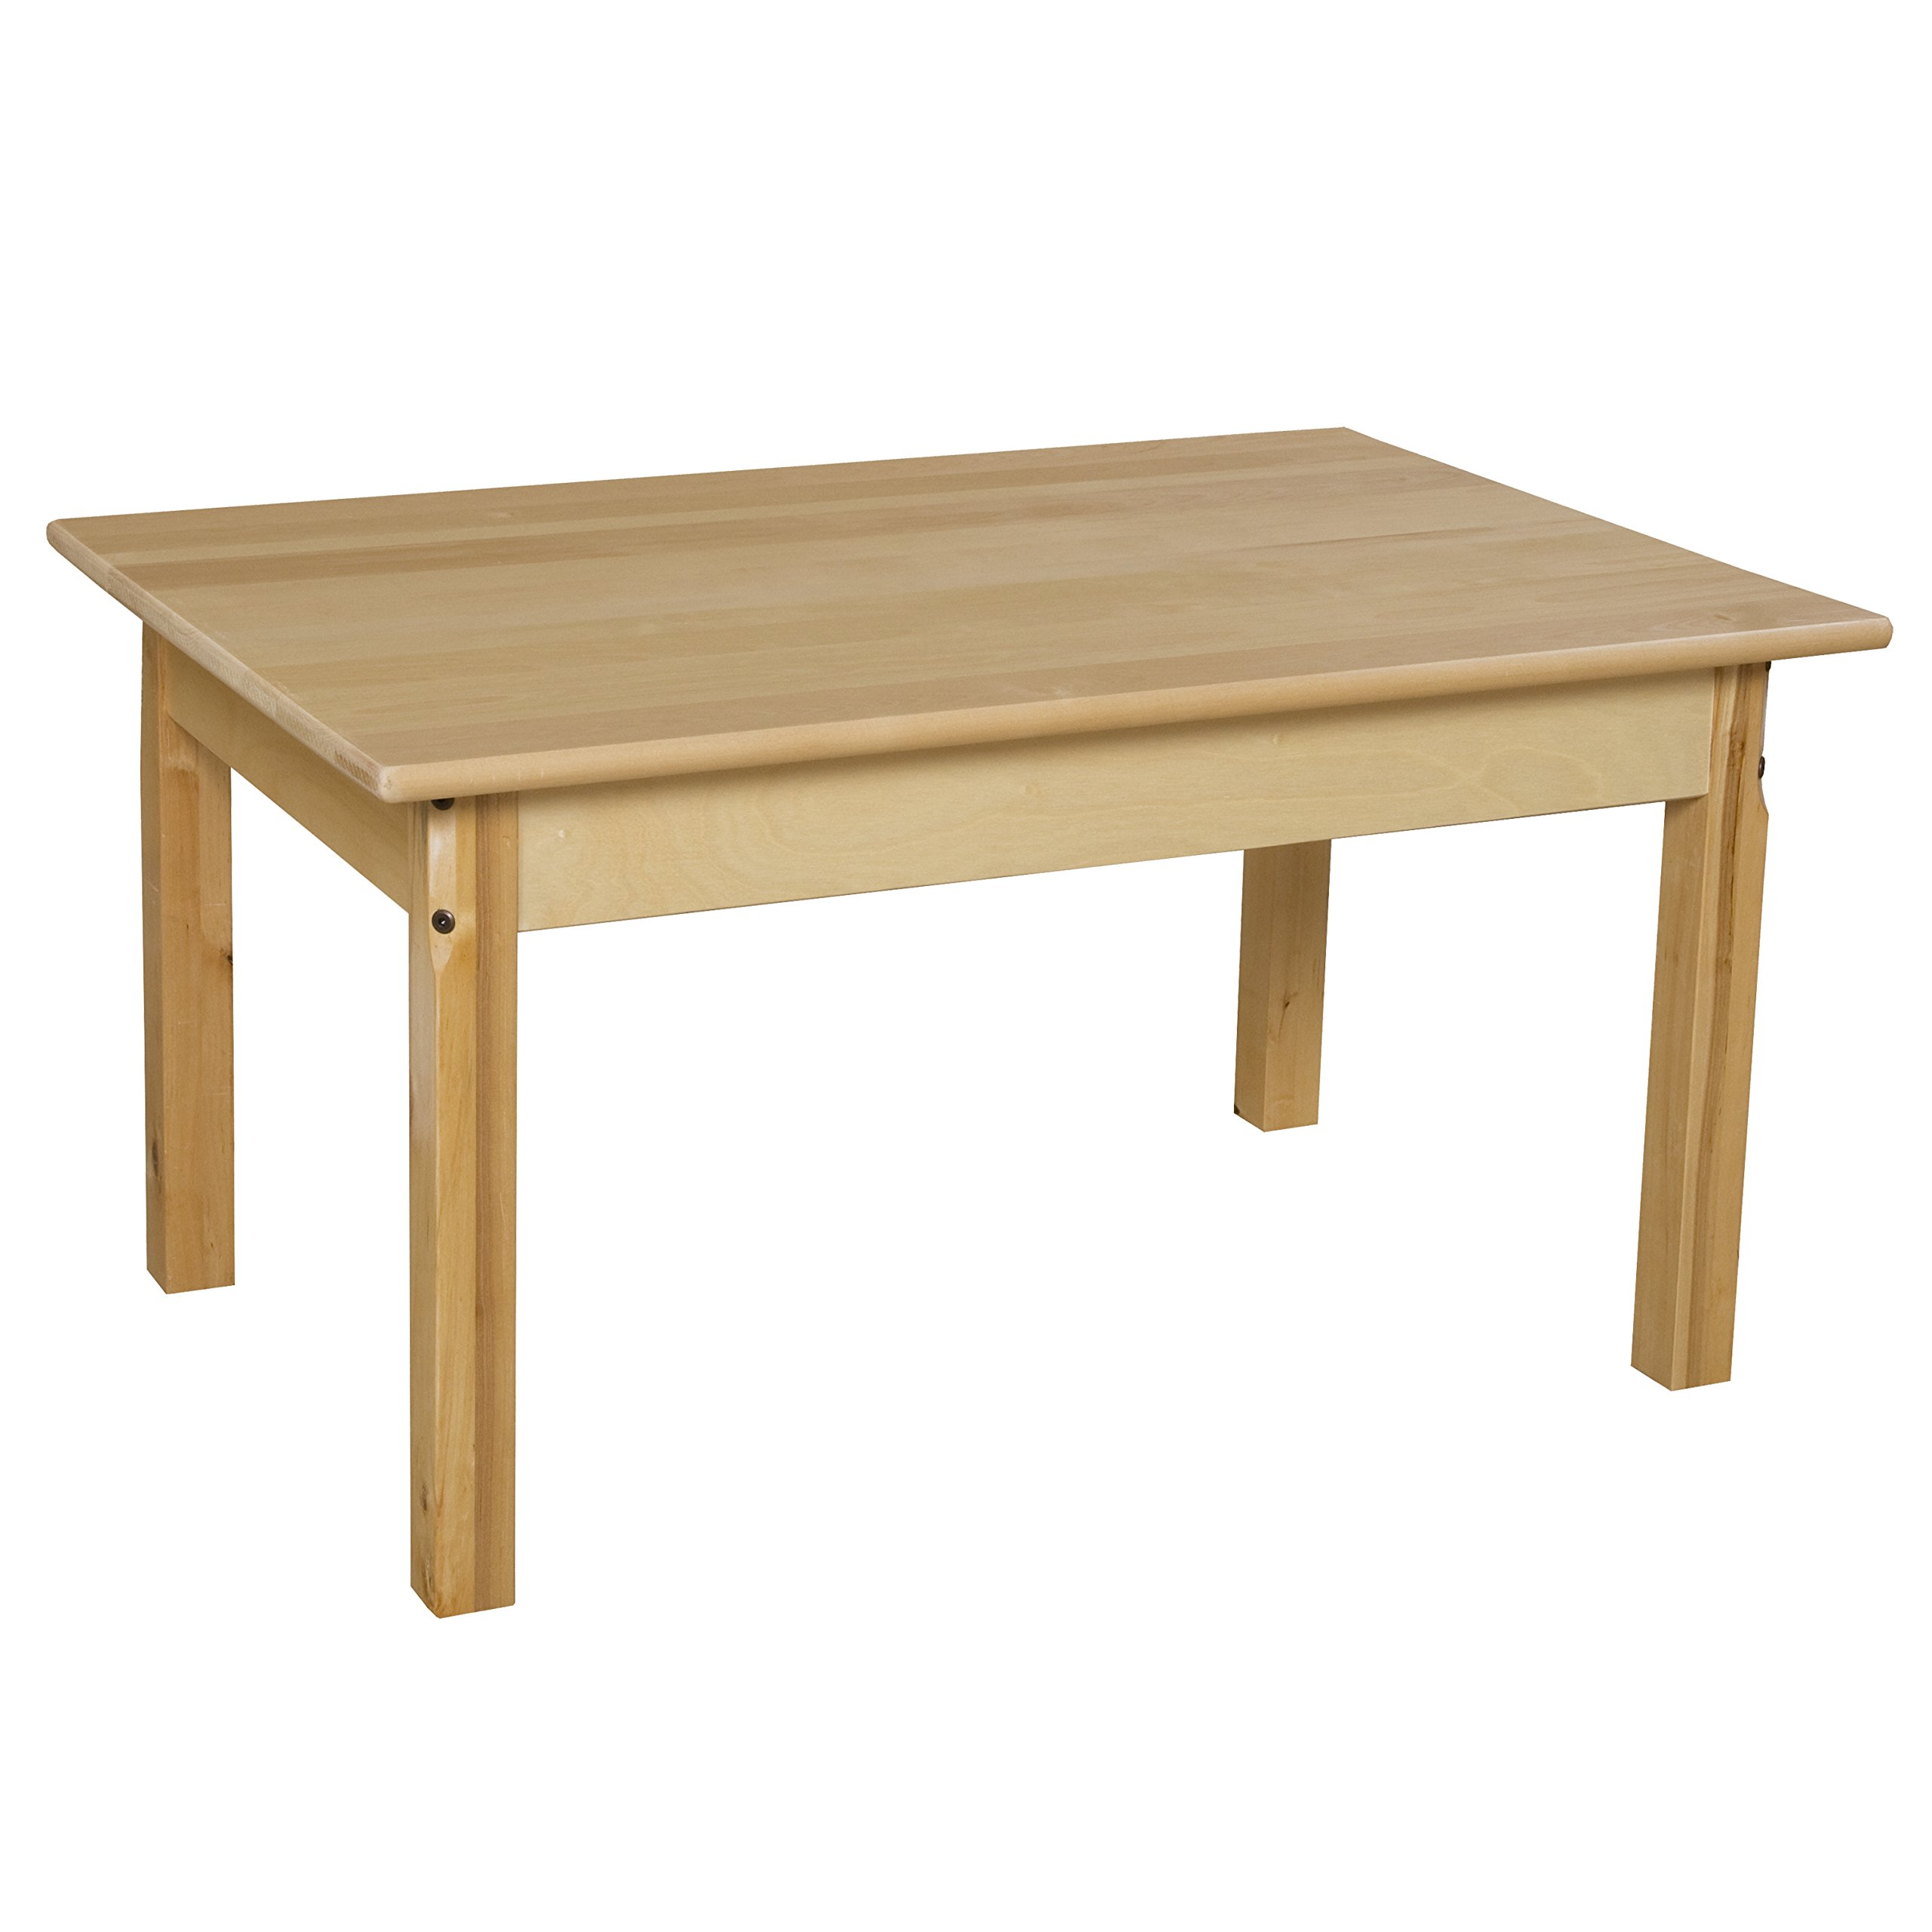 Wood Designs WD82318 Child's Table, 24'' x 36'' Rectangle with 18'' Legs by Wood Designs (Image #1)